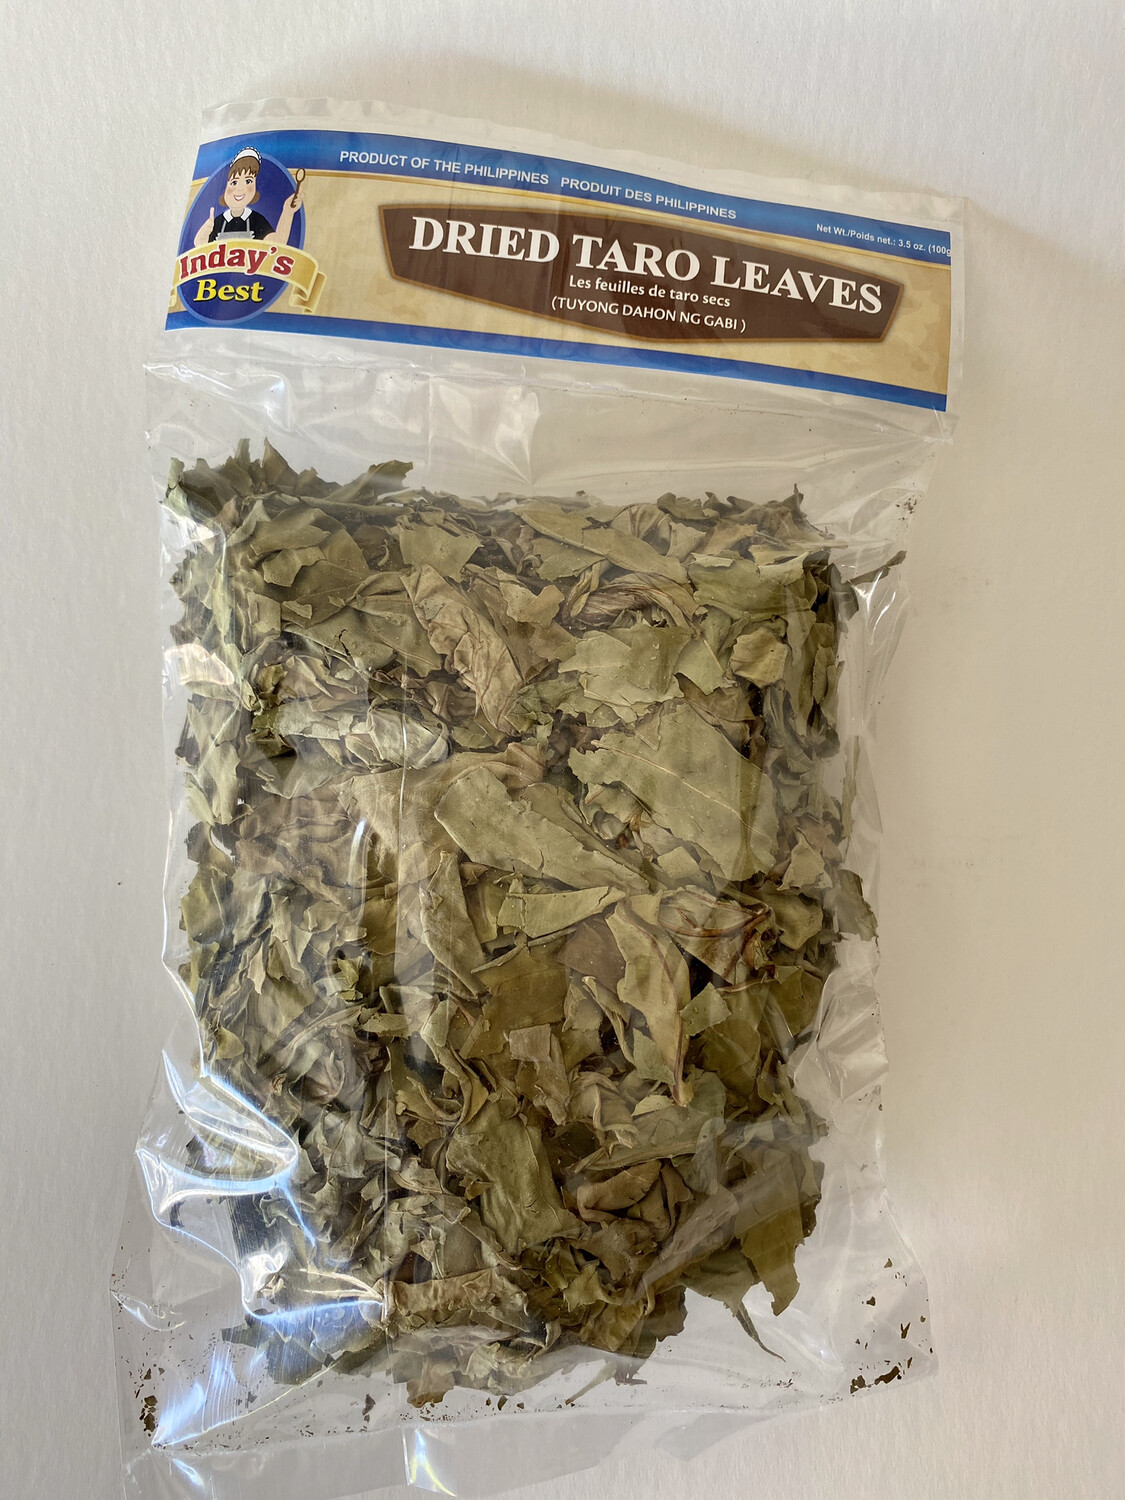 Inday's Best - Dried Taro Leaves - 100 Grams